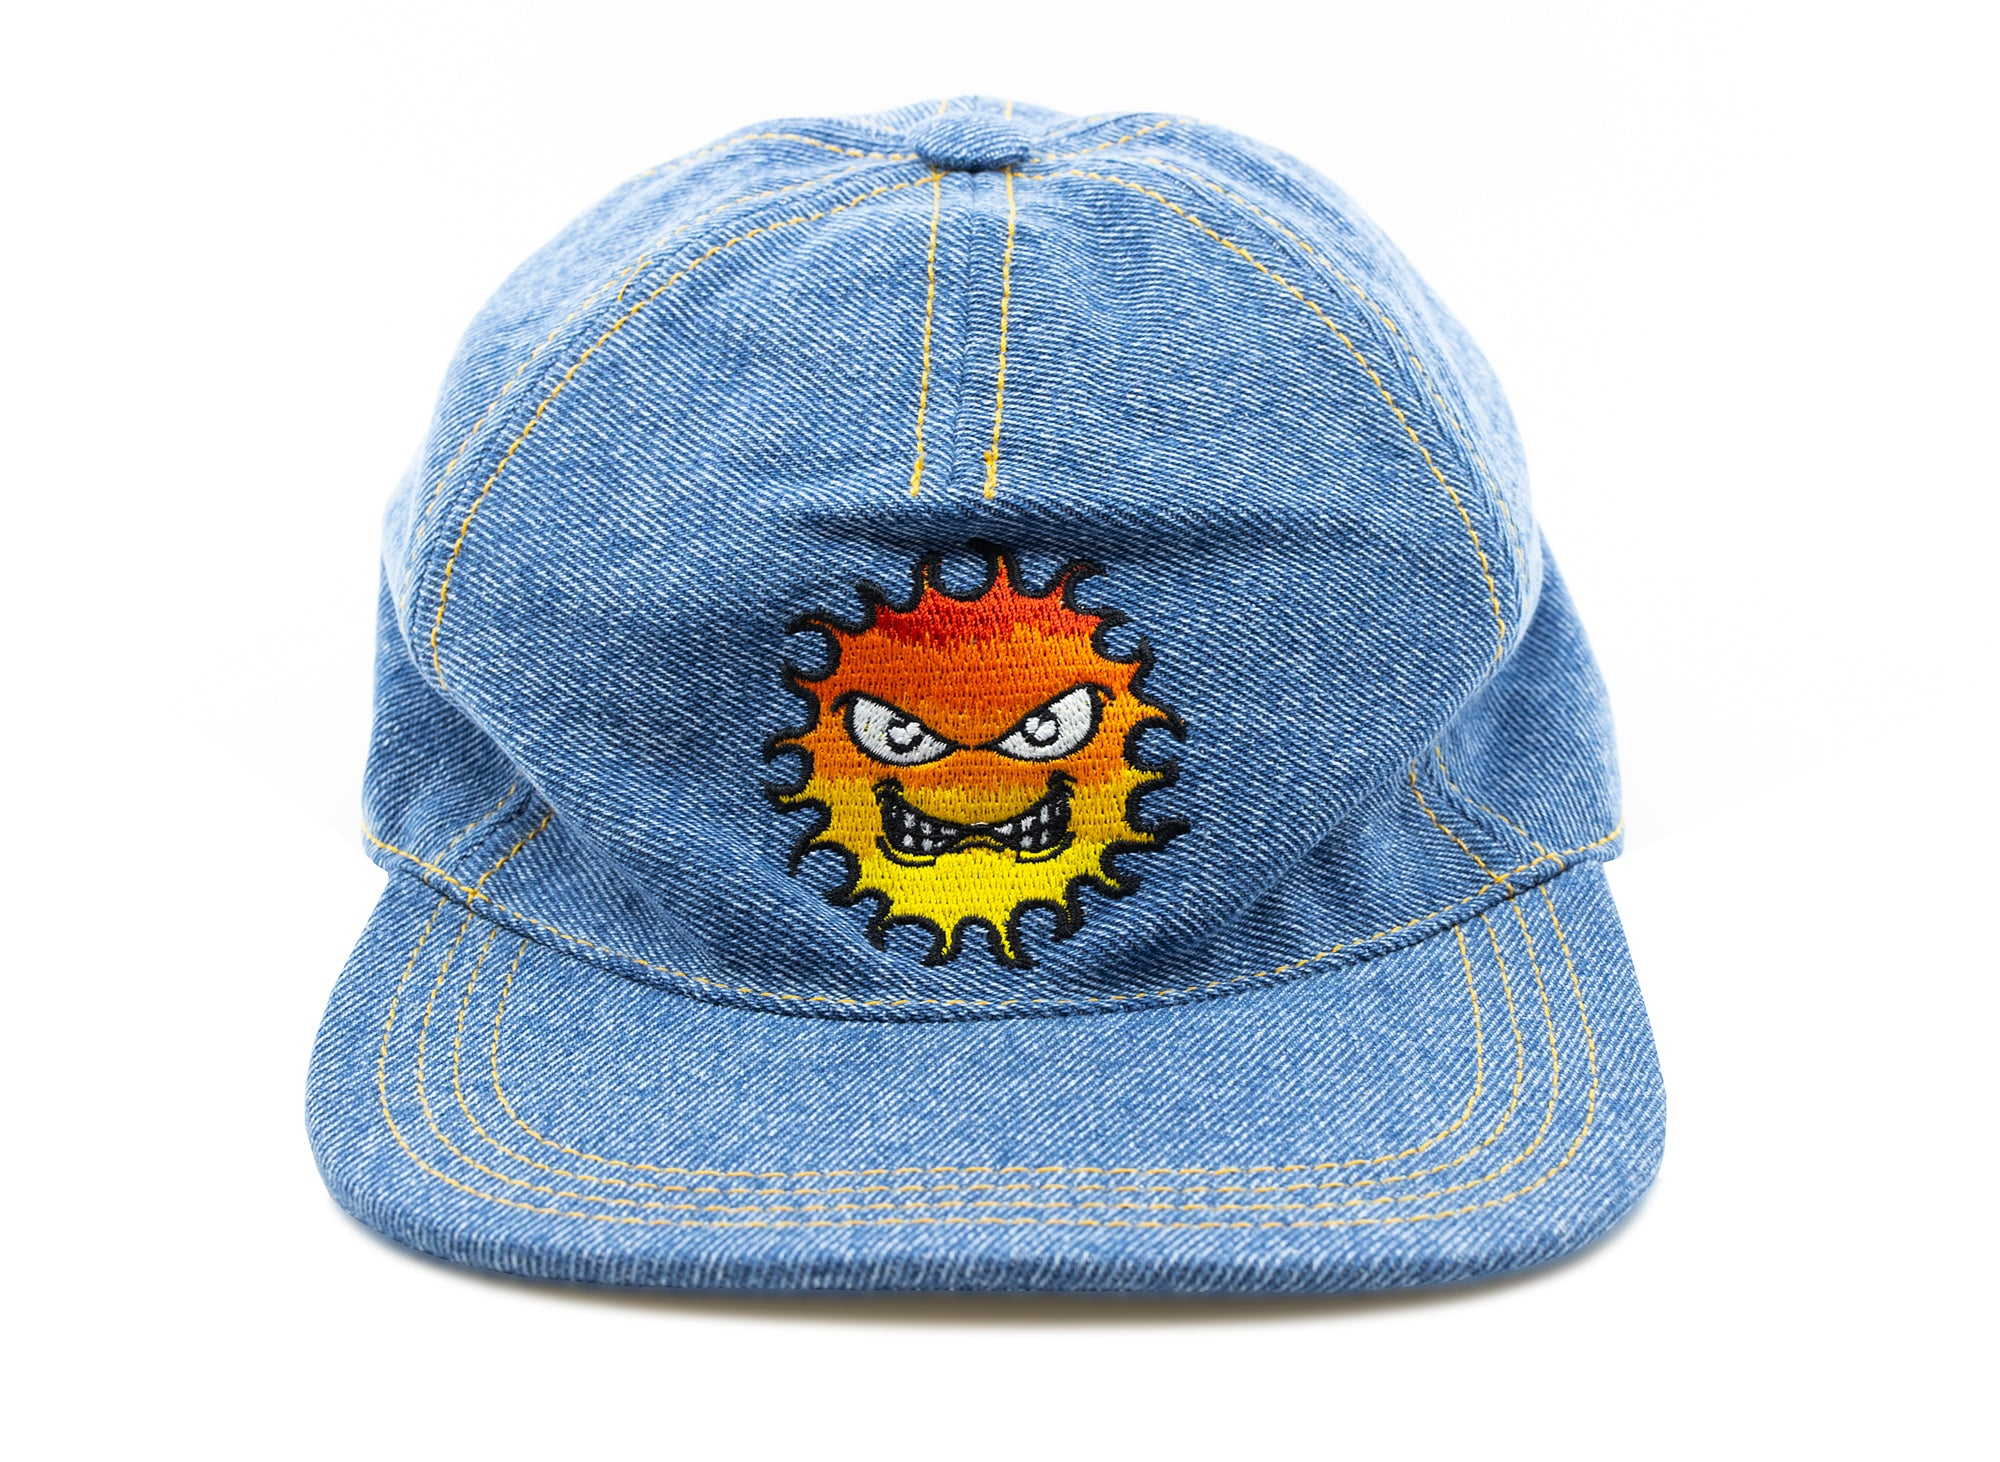 Rassvet (PACCBET) Embroidered Flame Cap in Blue